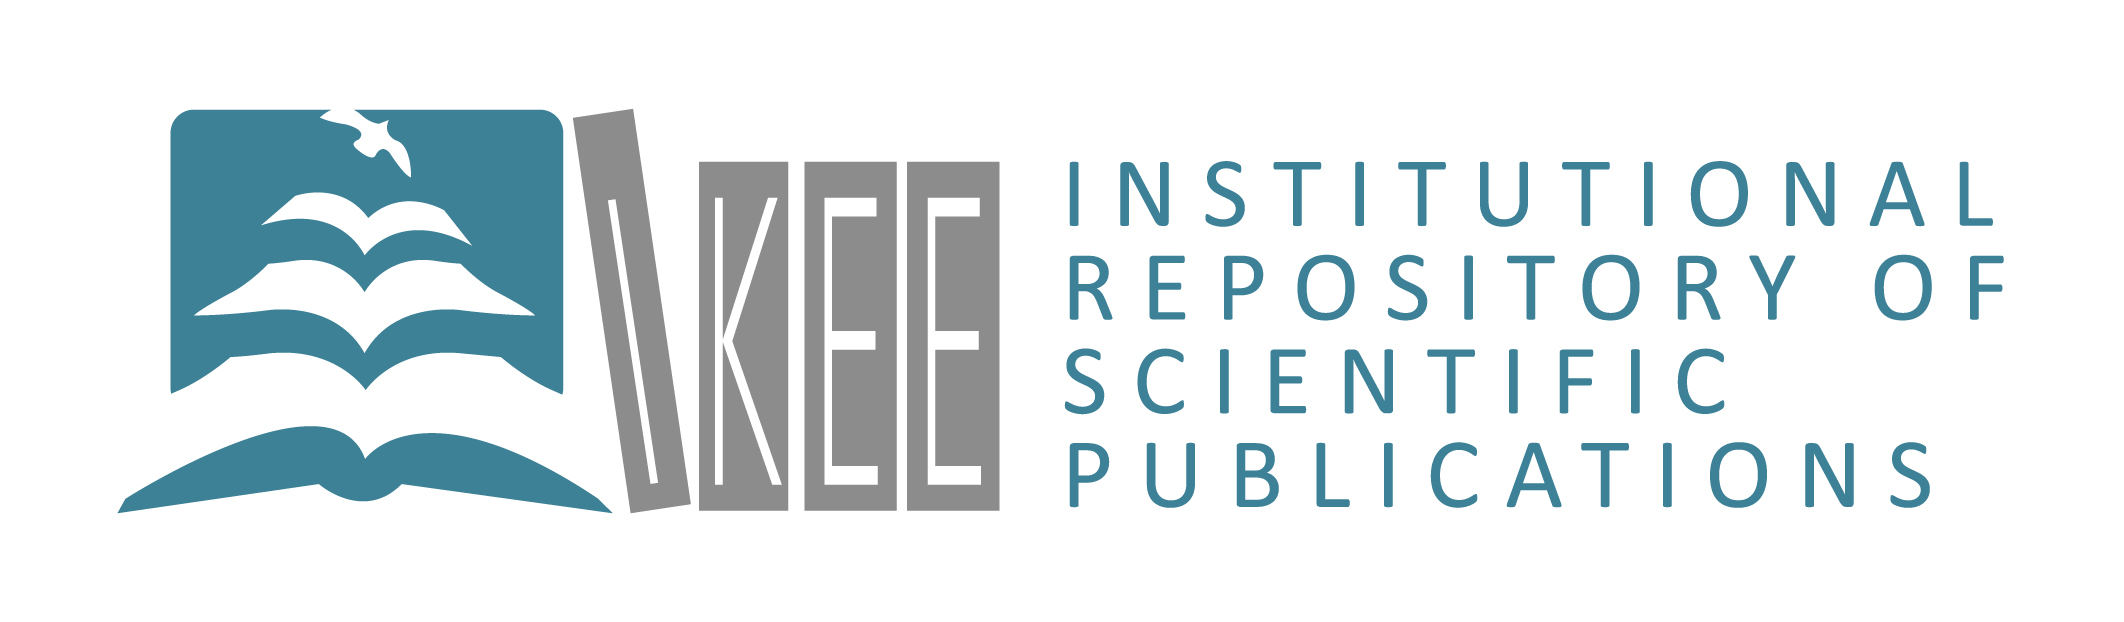 IKEE logo. © AUTh Library.